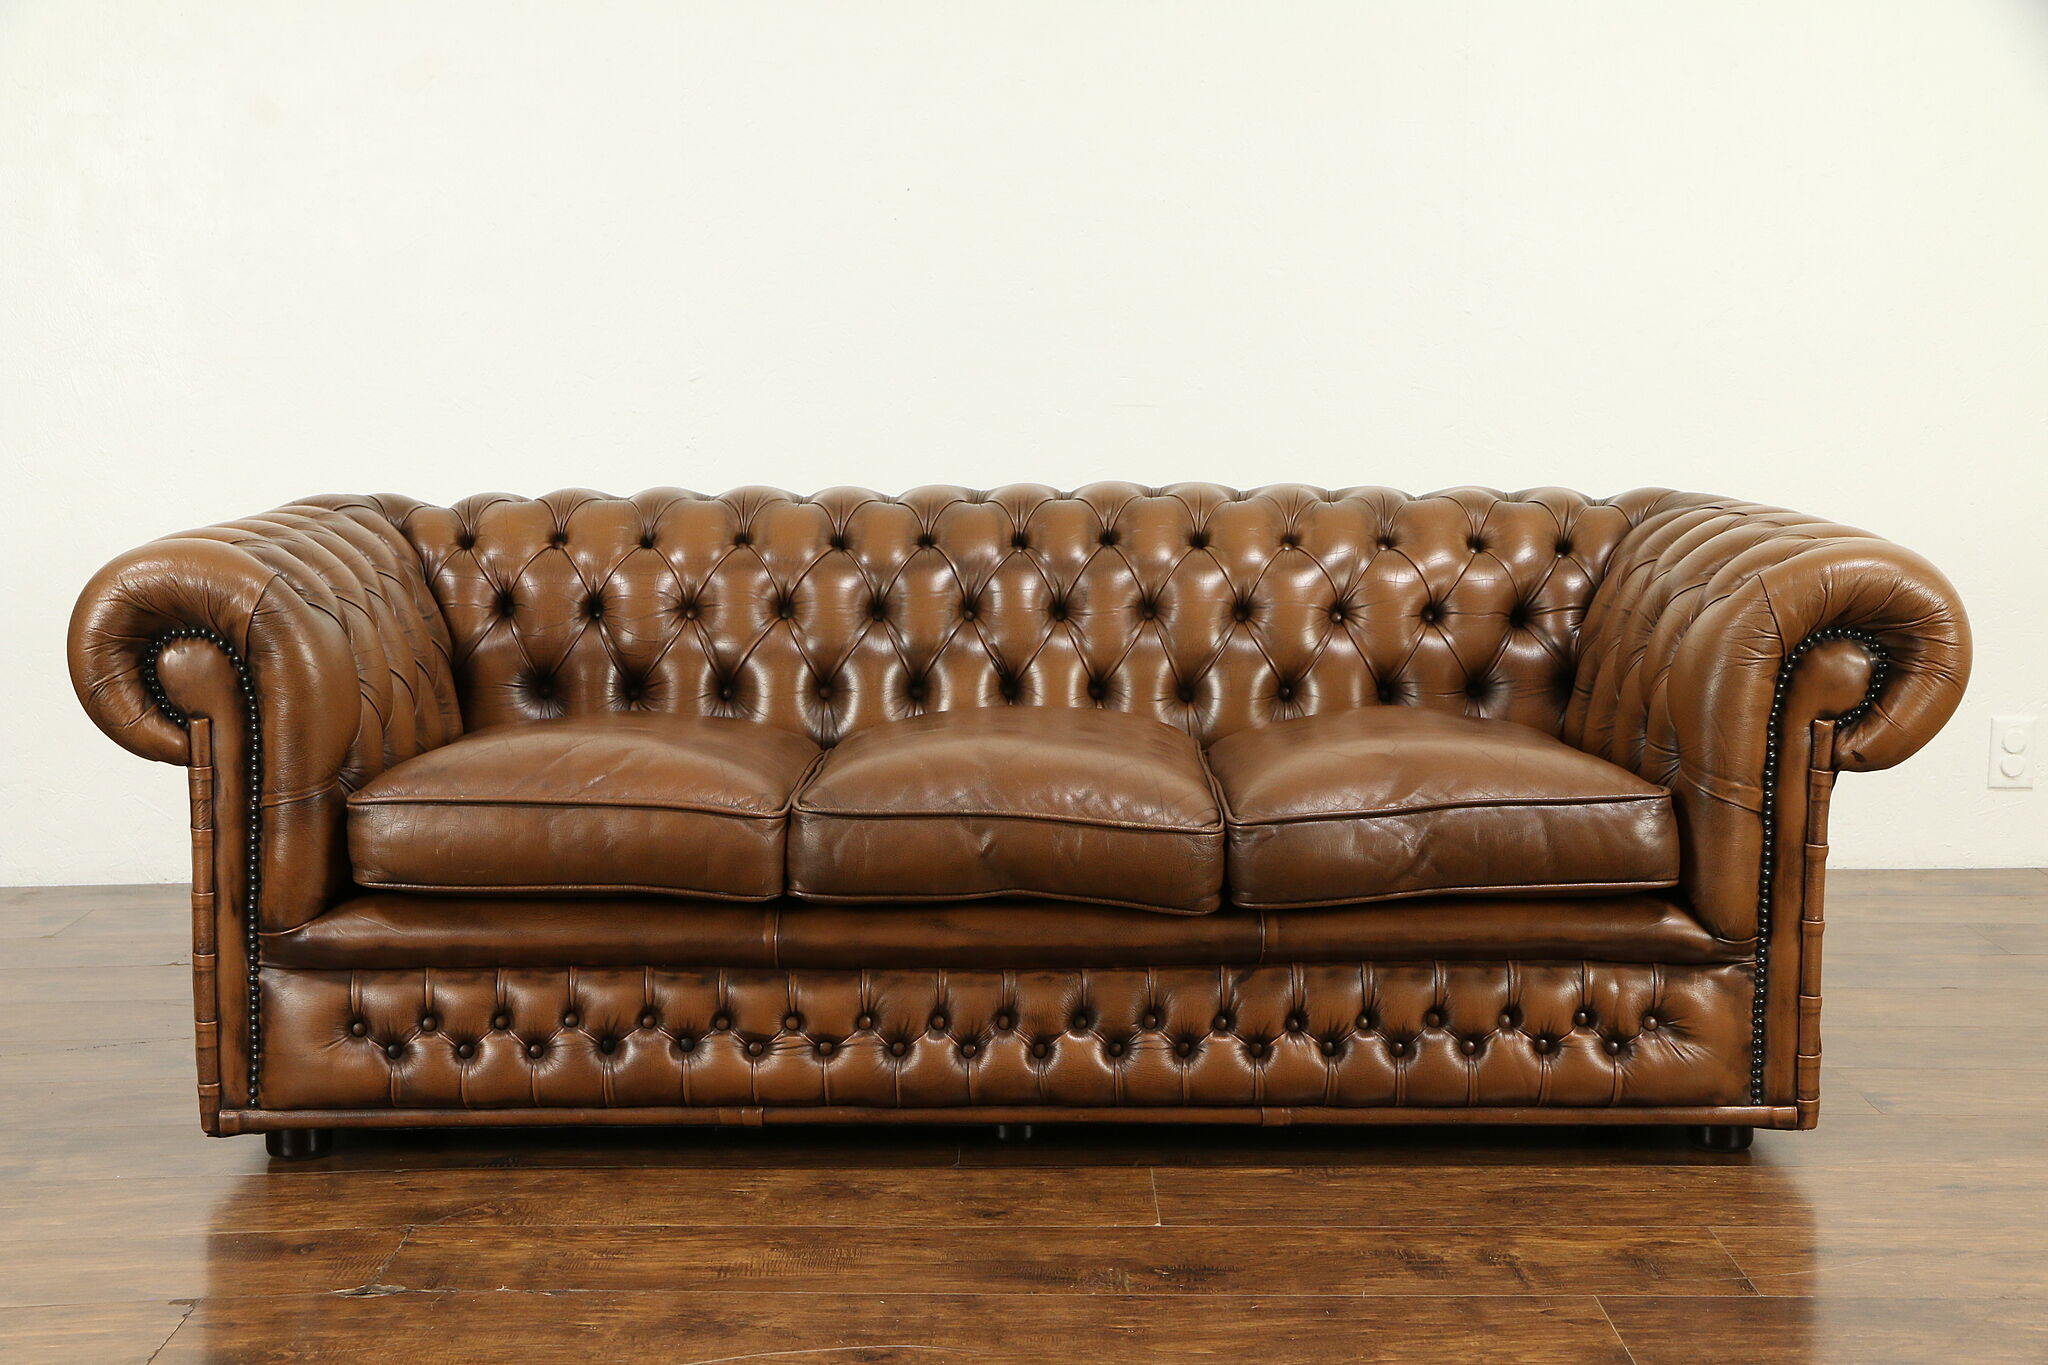 - SOLD - Chesterfield Tufted Brown Leather Vintage Scandinavian Sofa